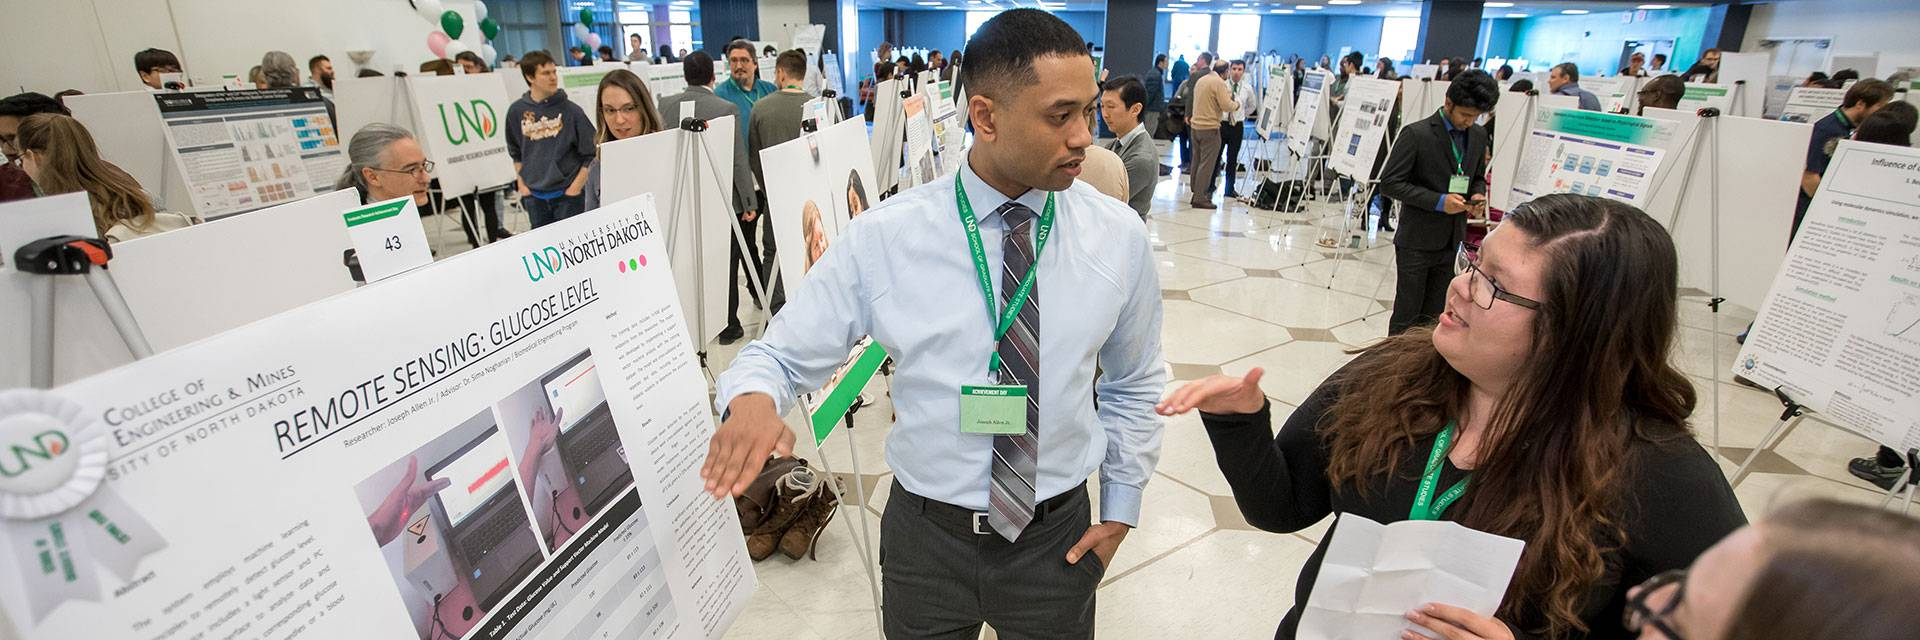 A student presents his research topic at a Graduate Expo